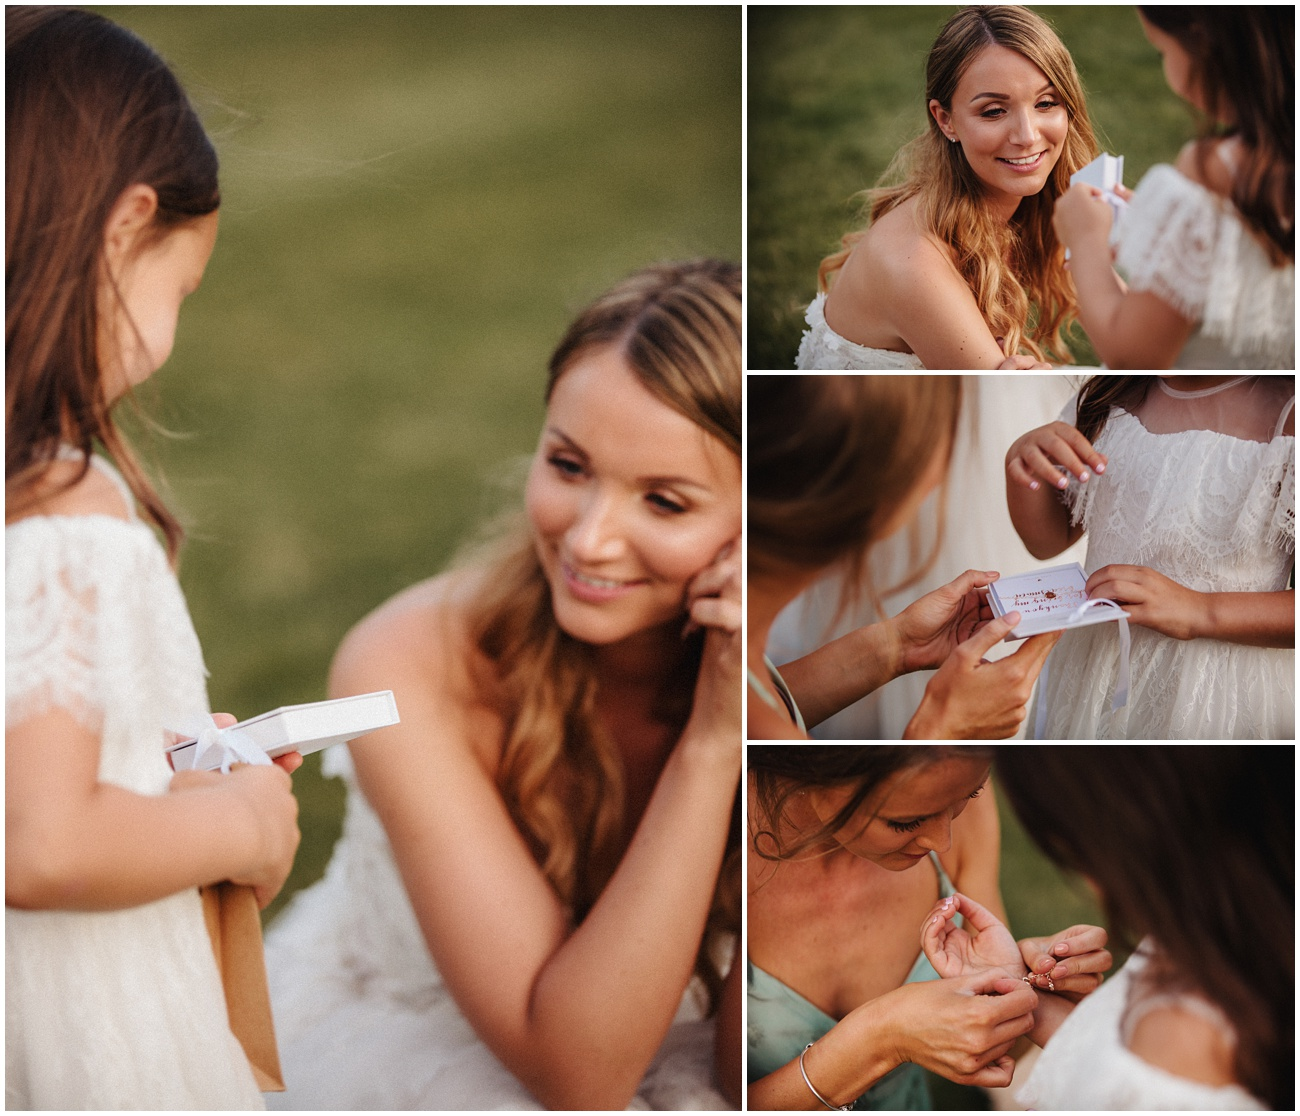 Bride gives the flower girl a gift